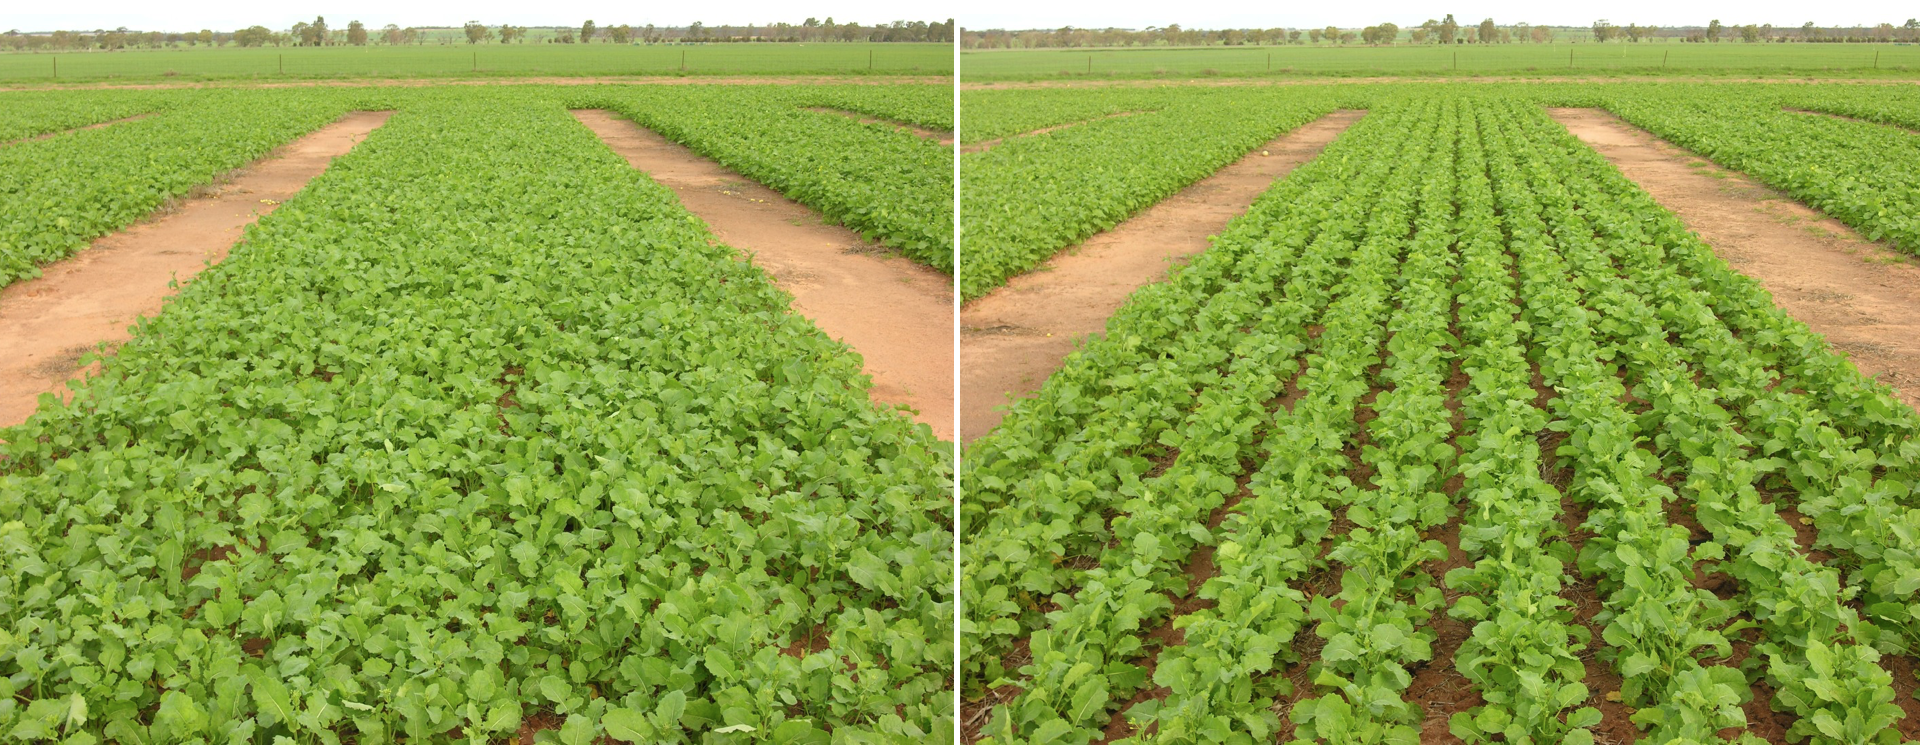 Left: narrow rows. Right: wide rows.